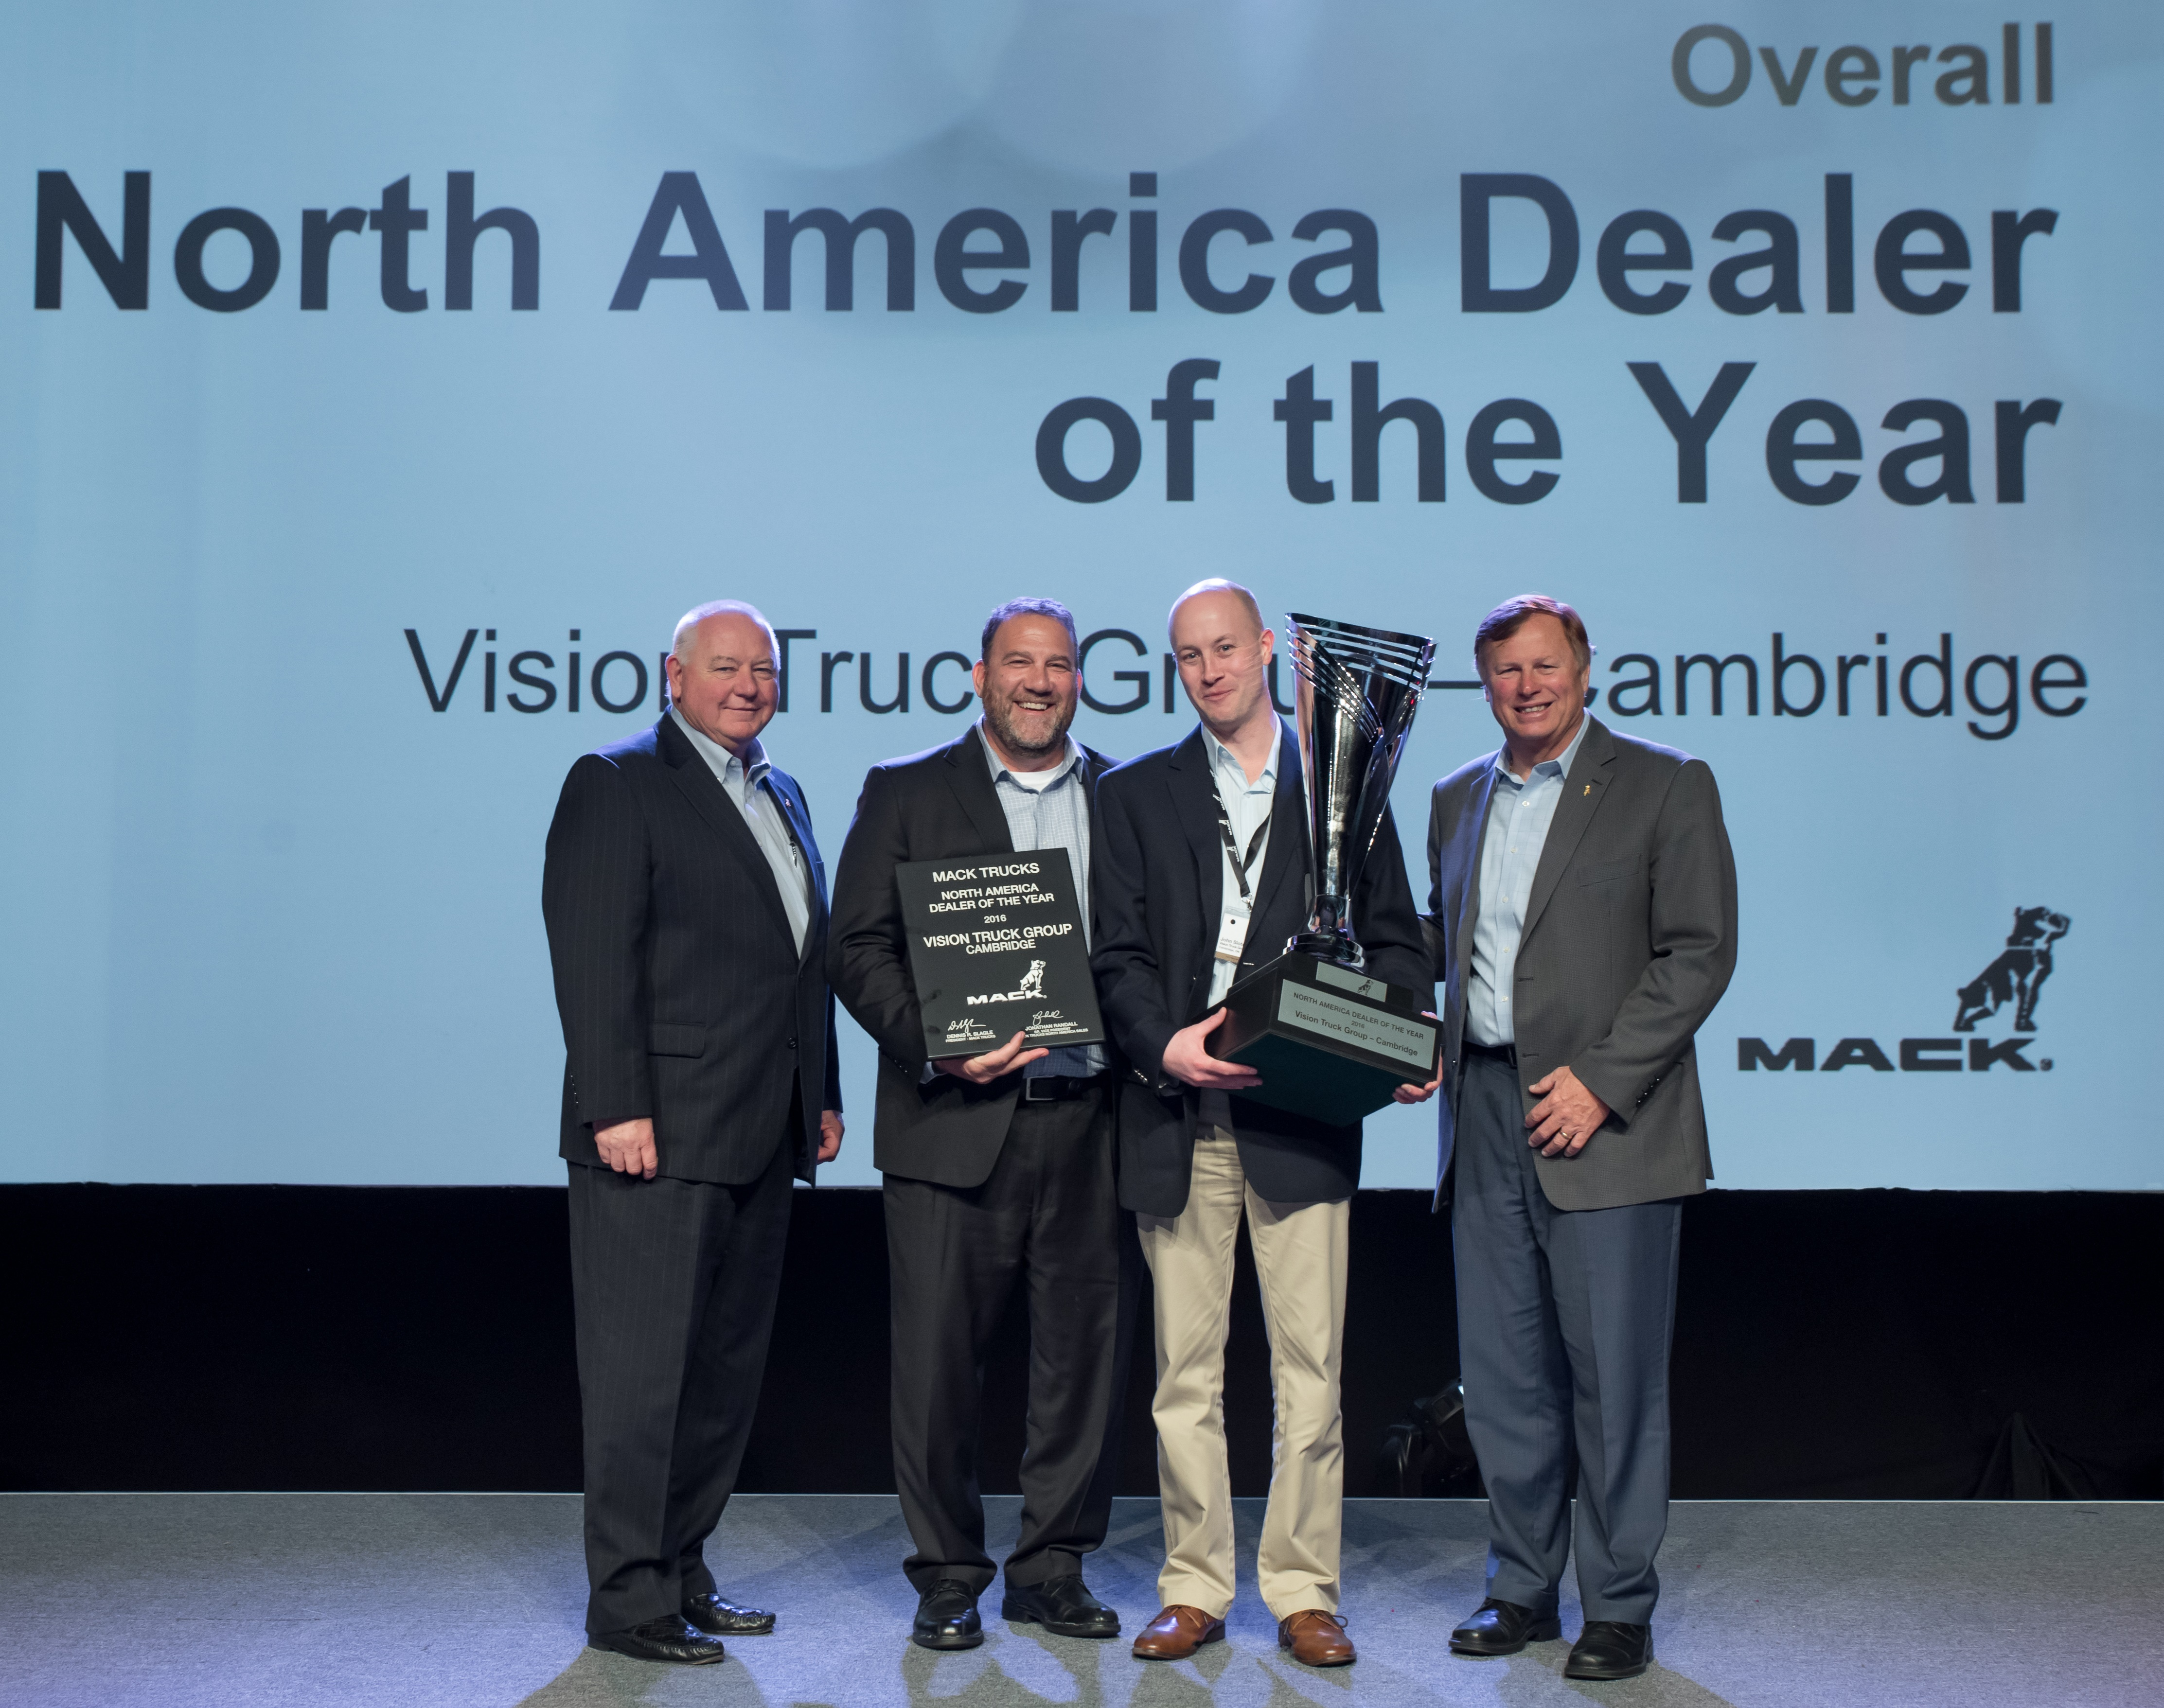 Mack Trucks named Vision Truck Group of Cambridge, Ontario, Canada its 2016 North American Dealer of the Year.